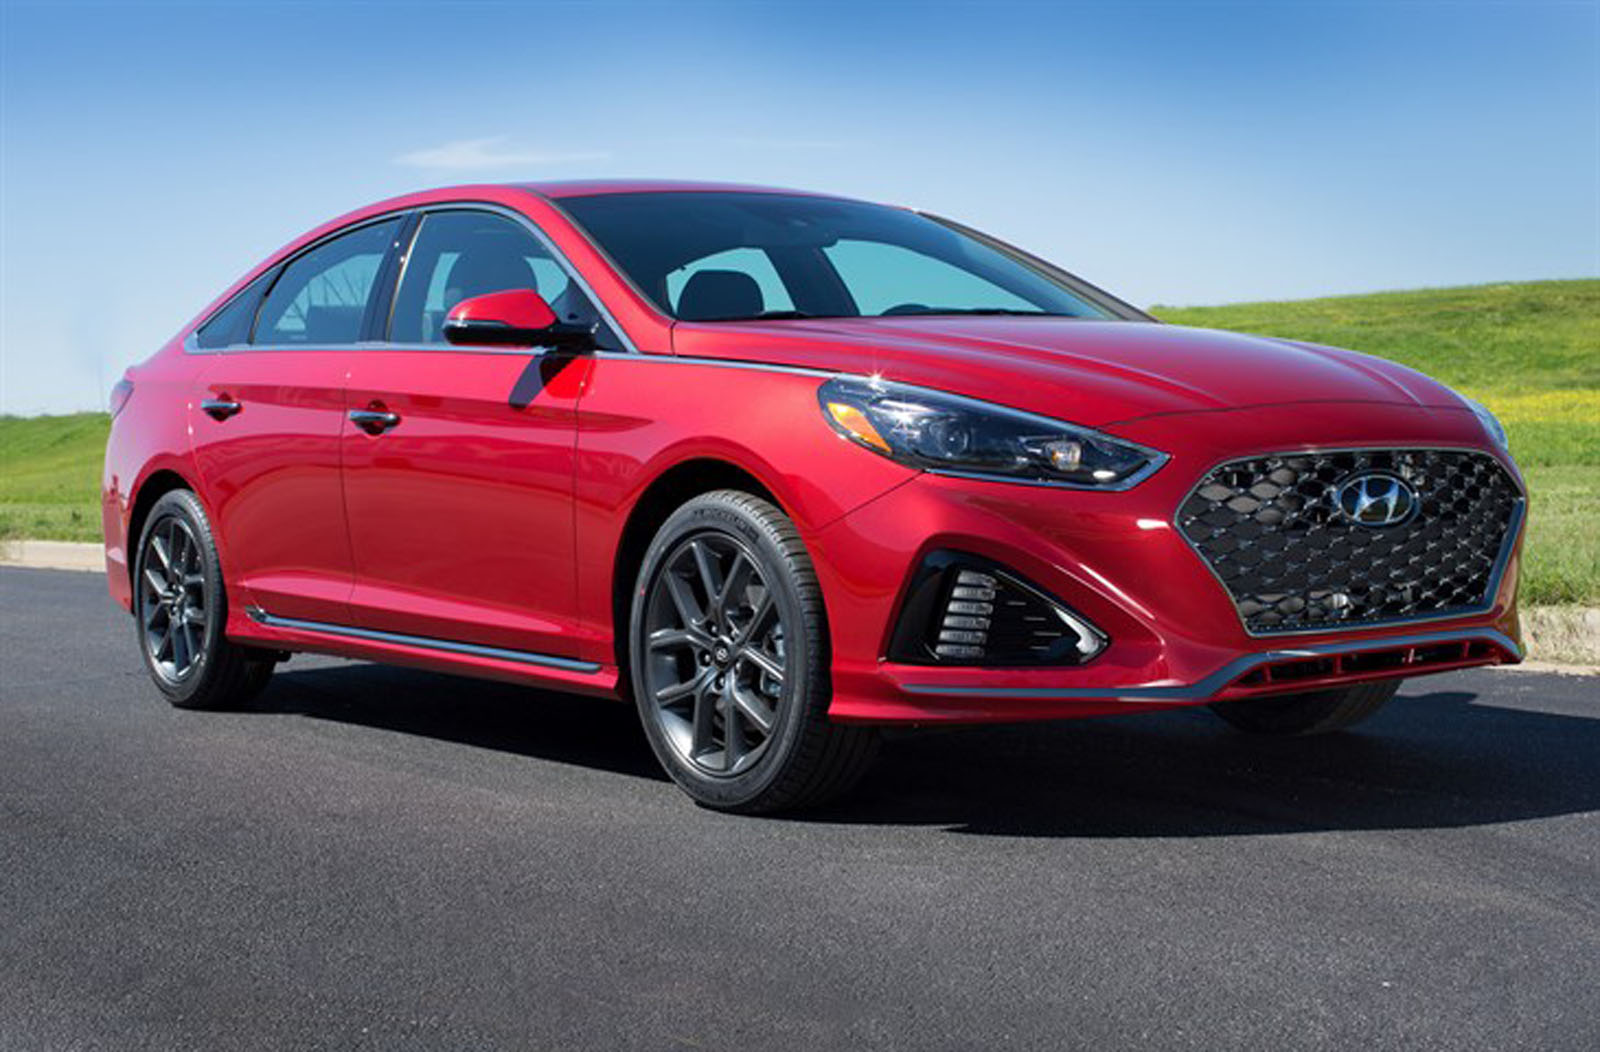 hyundai plays it safe with refreshed 2018 sonata. Black Bedroom Furniture Sets. Home Design Ideas